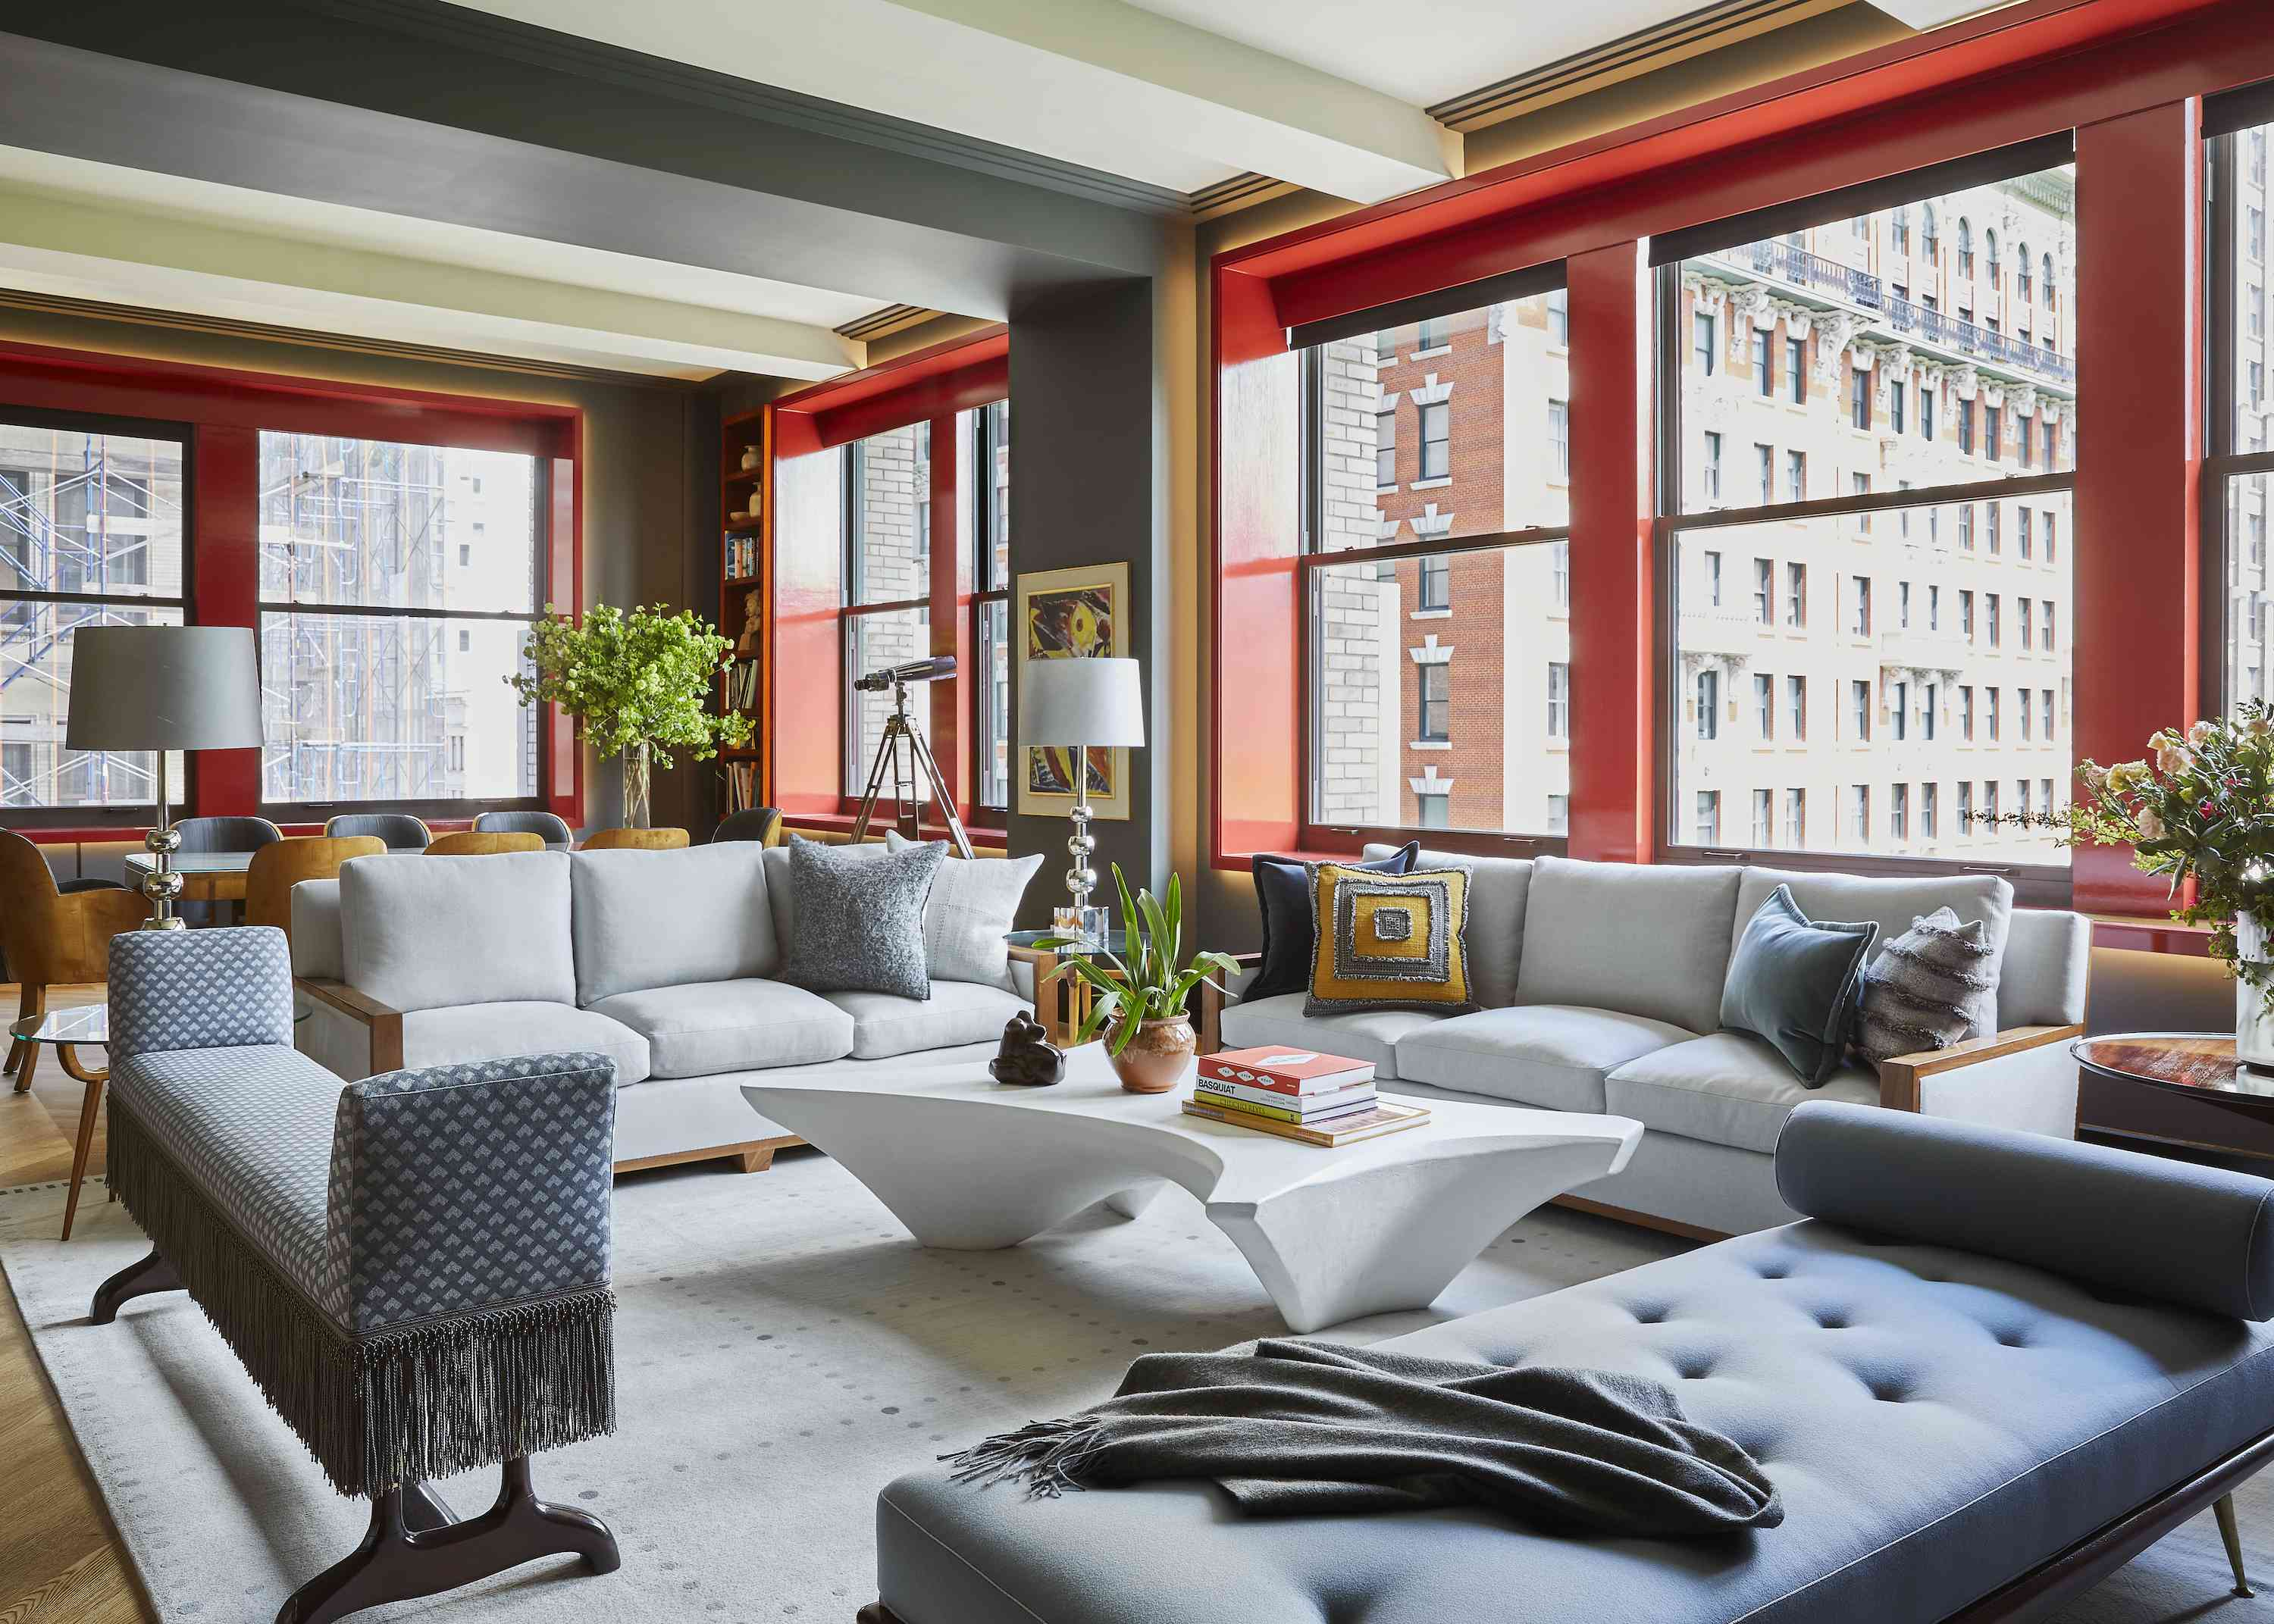 2021 Living Room Design Trends, According to Experts